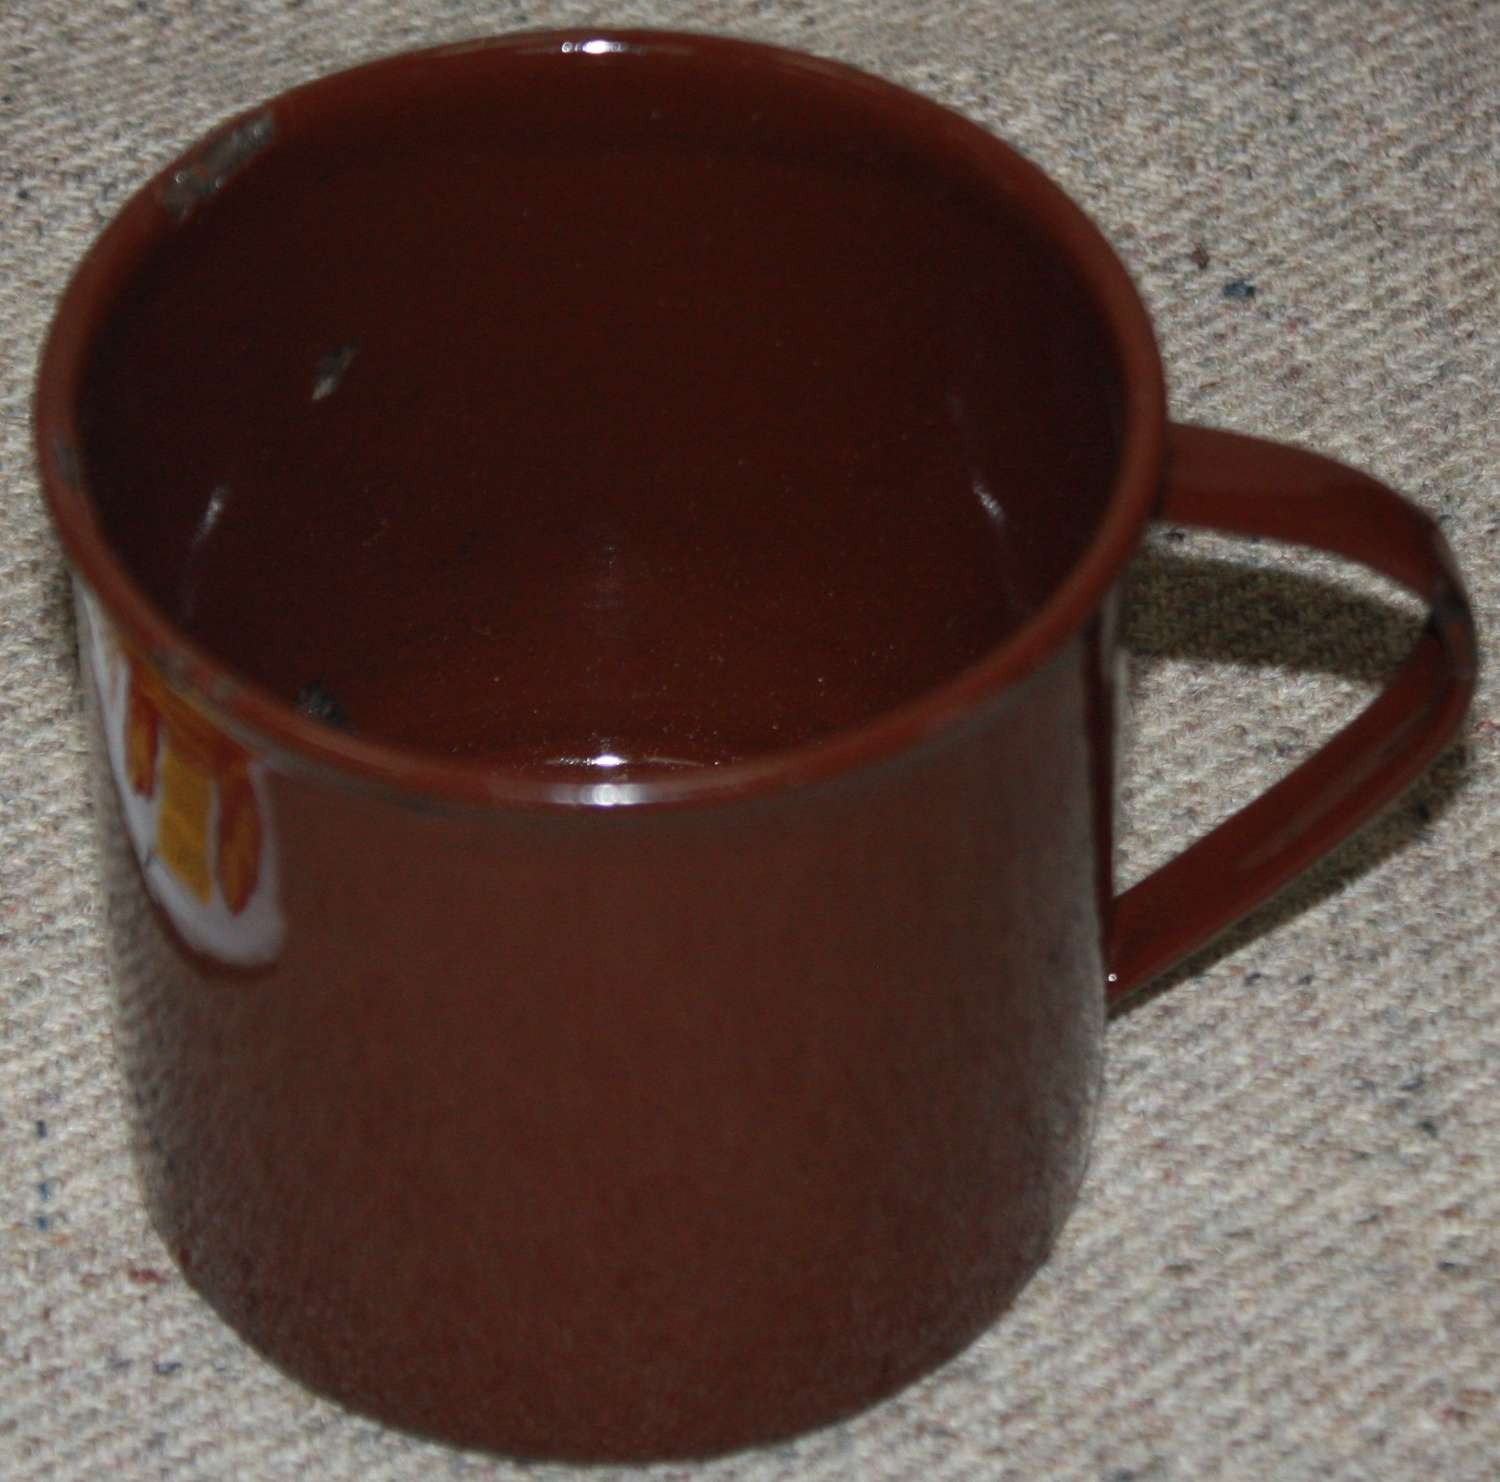 A WWII PERIOD BRITISH FORCES ISSUE ENAMEL MUG